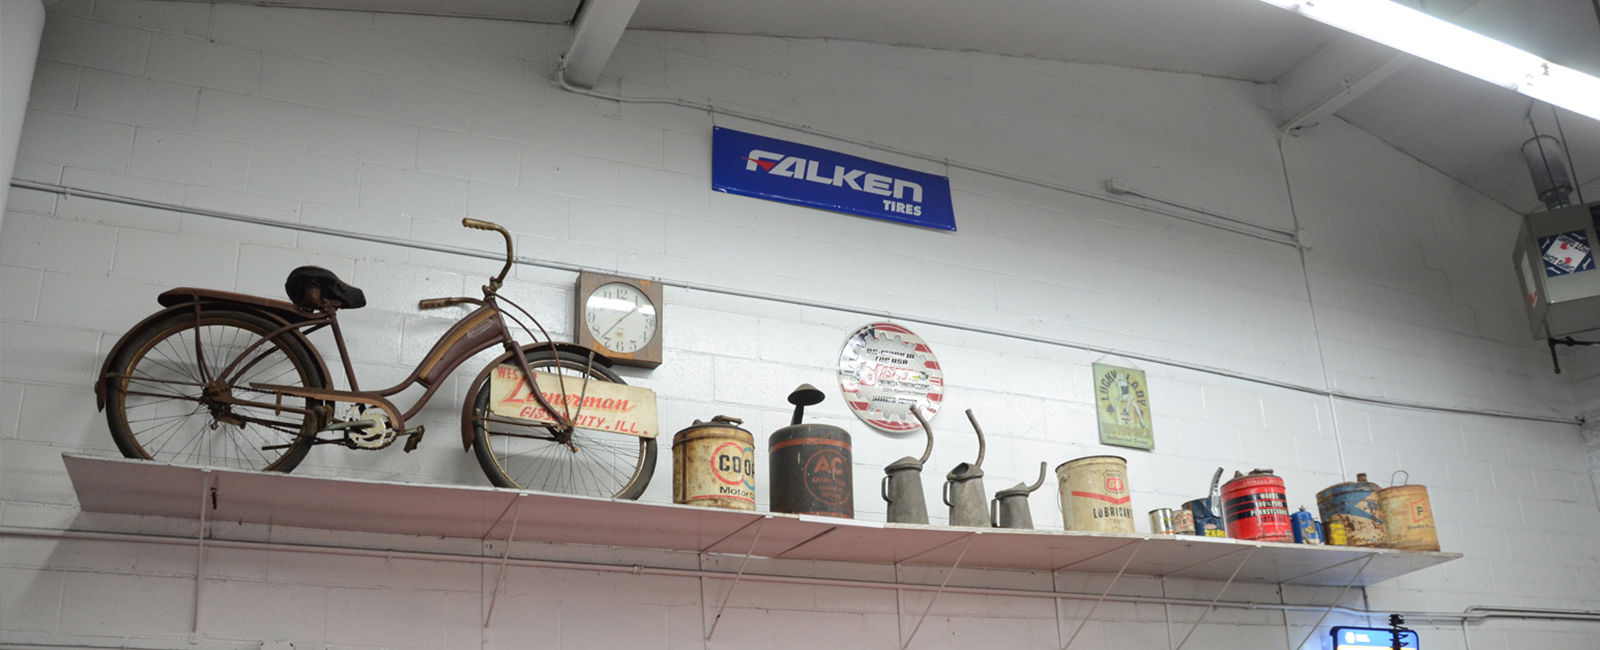 Auto Mechanic - Auto Diagnostics